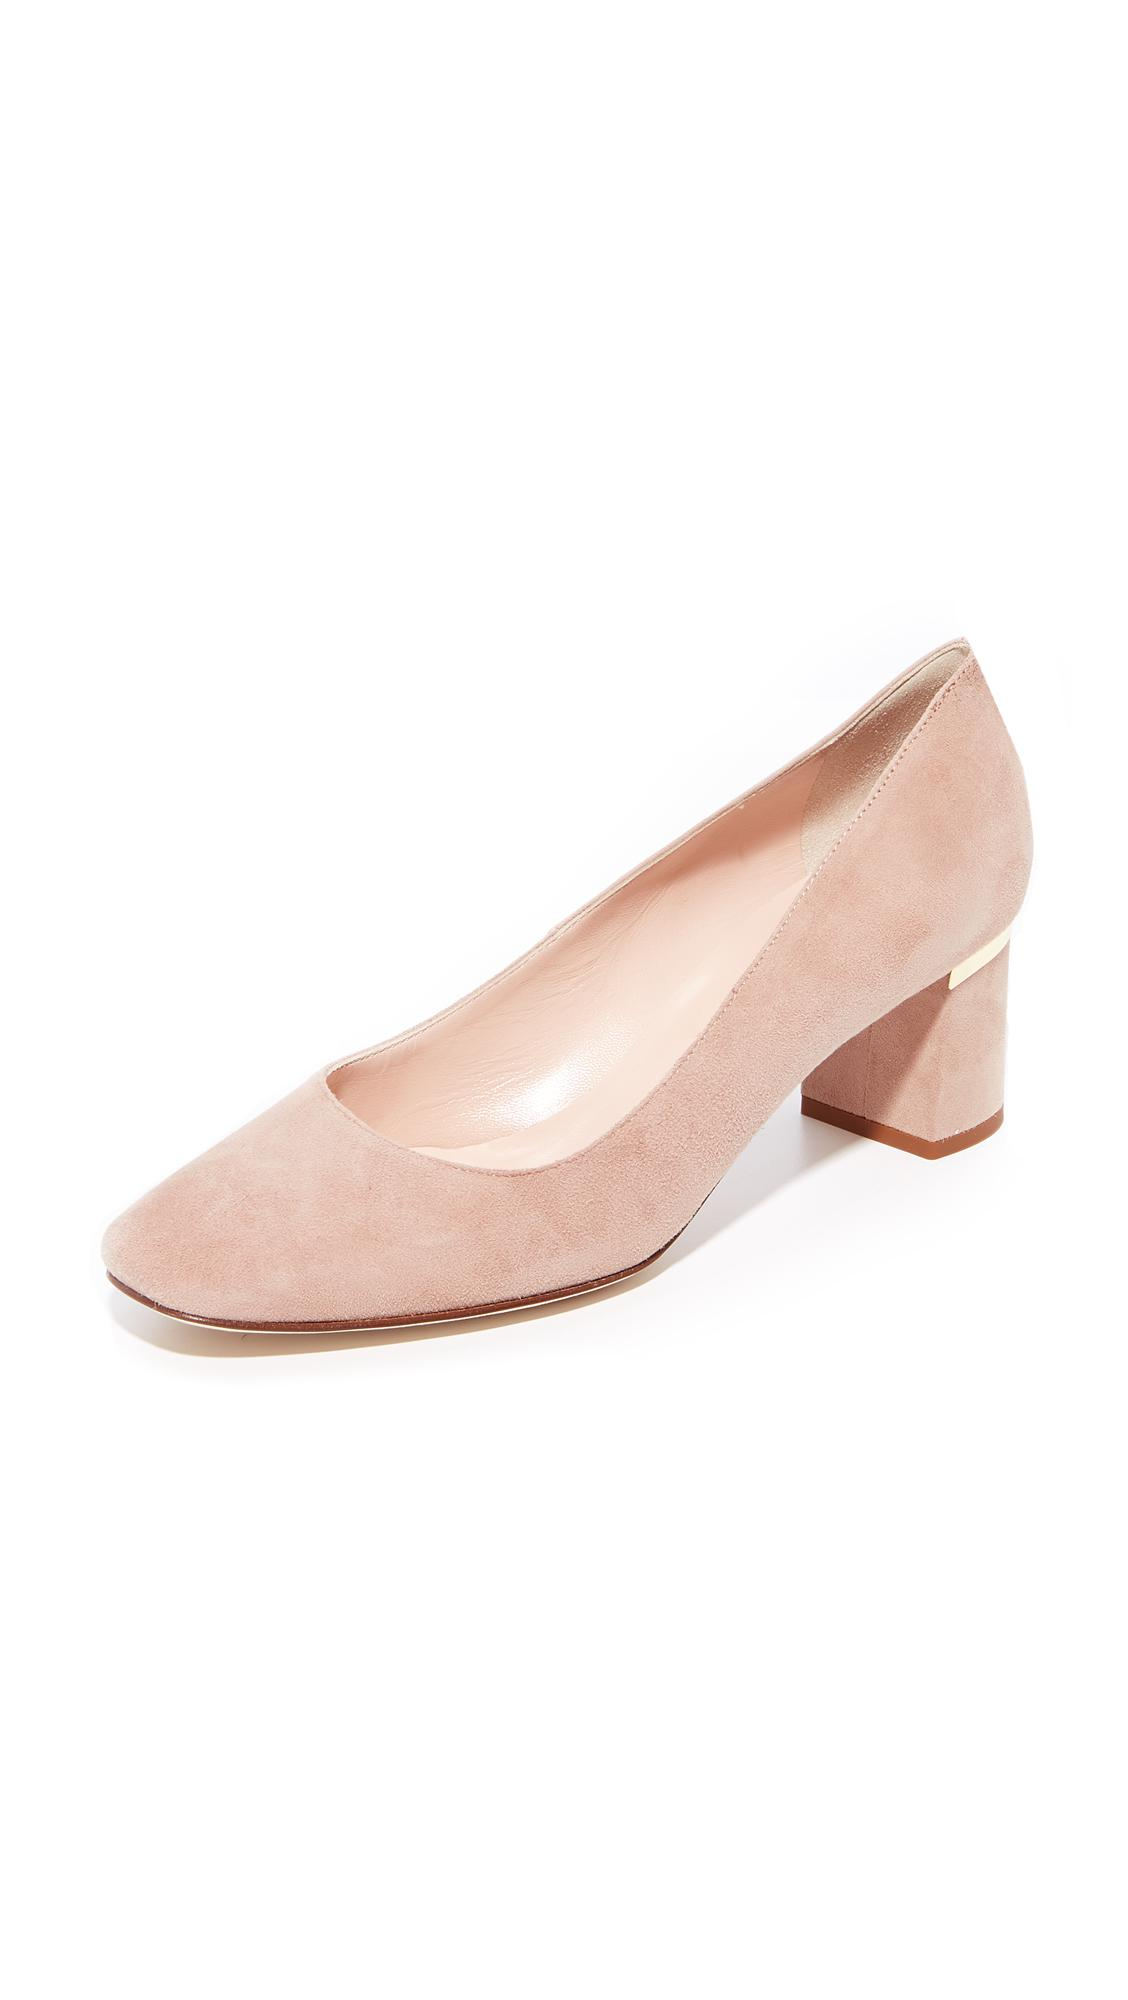 2616585839a Kate Spade. Women s Dolores Too Ballet Court Shoes